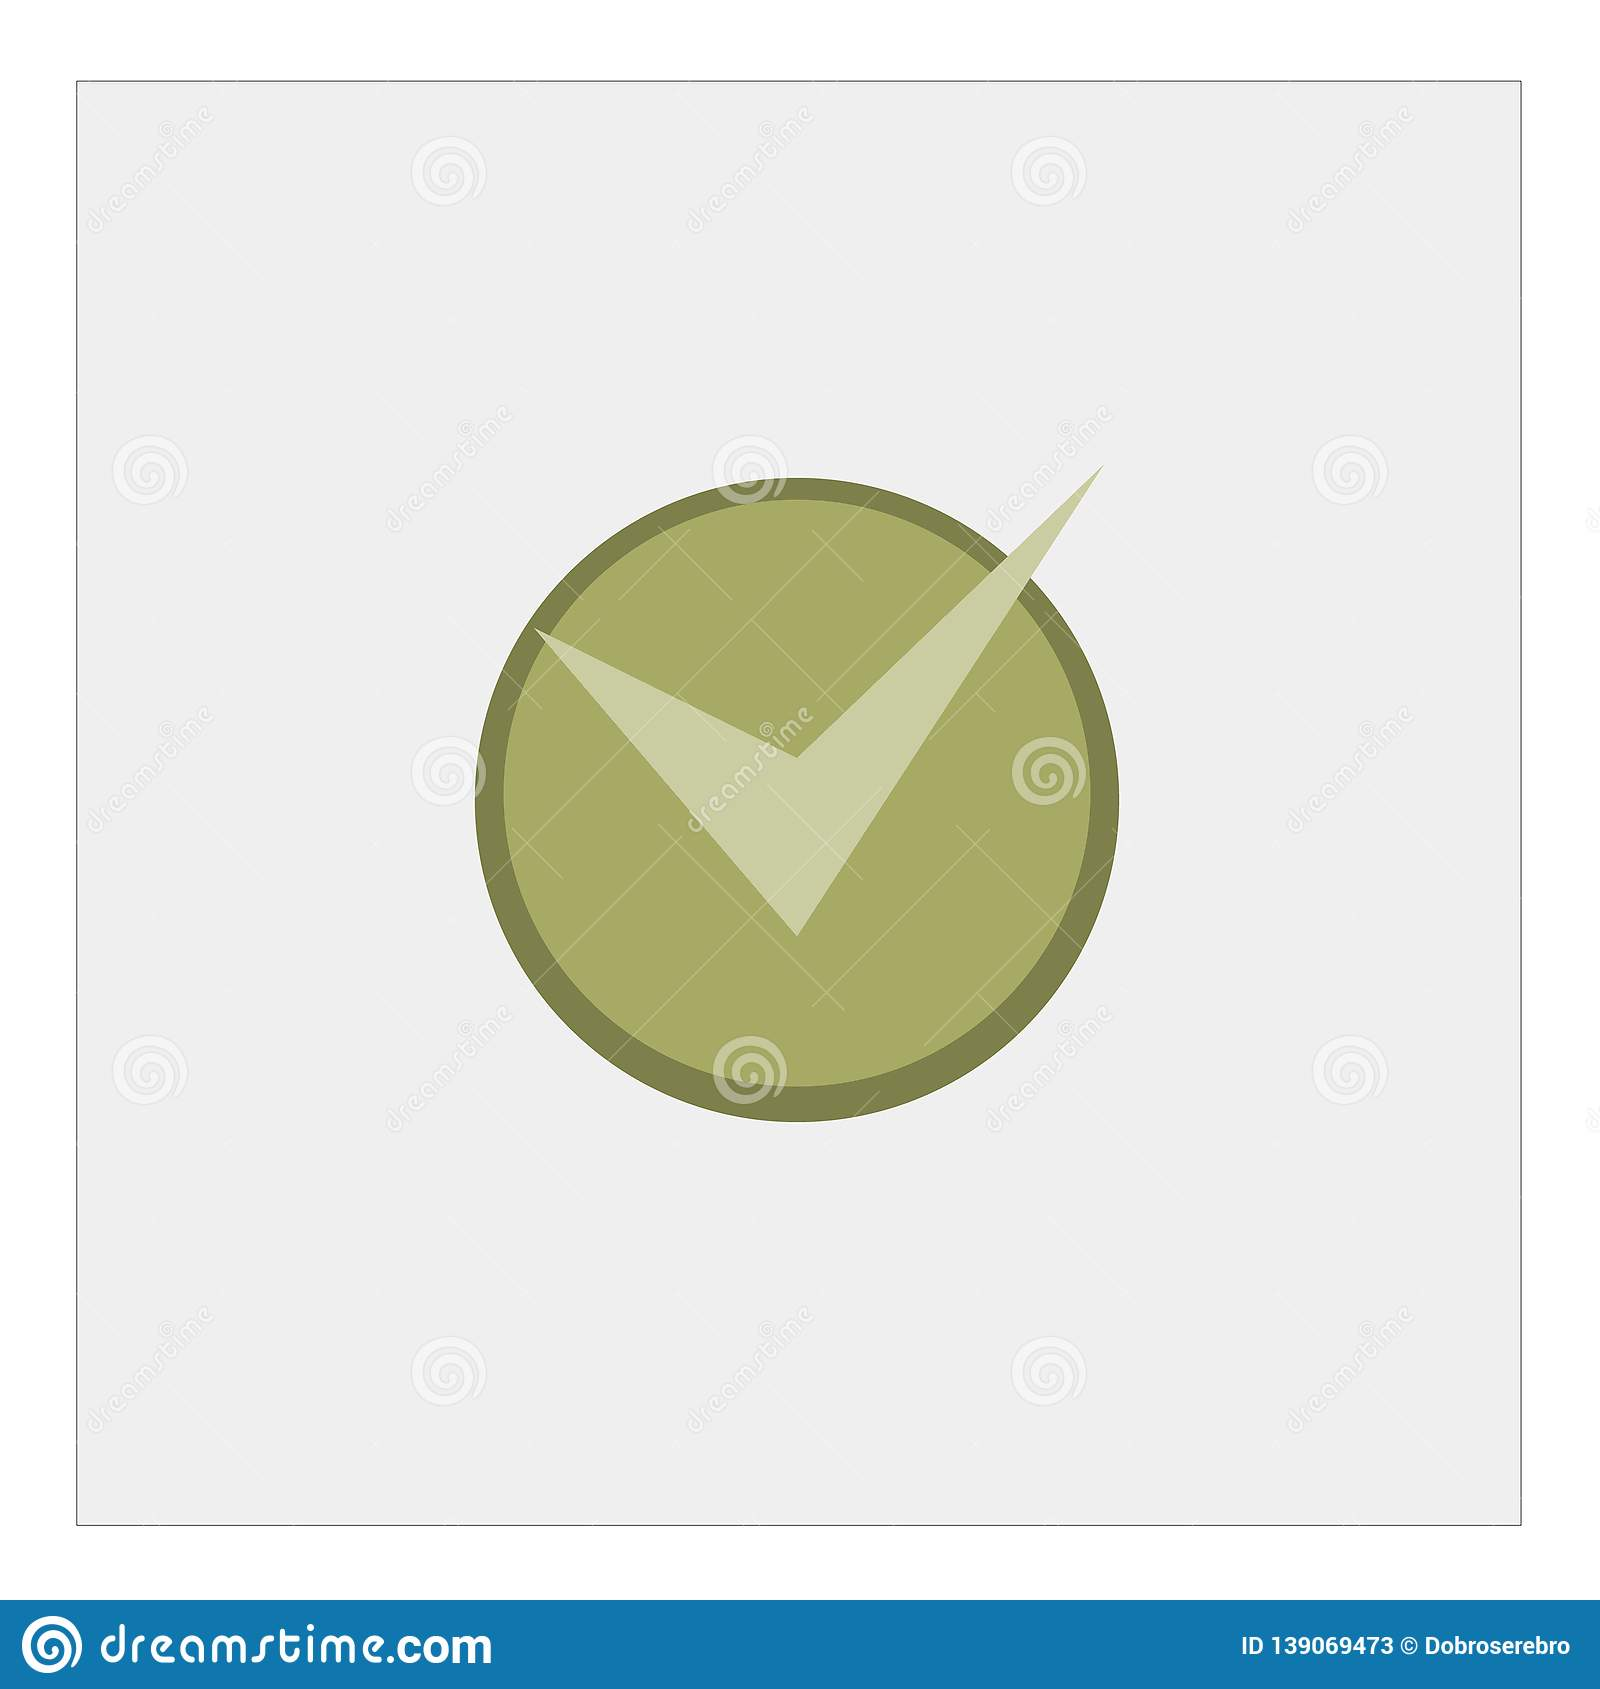 Check mark icon in flat style. Ok, accept illustration on white isolated background. Tick business concept